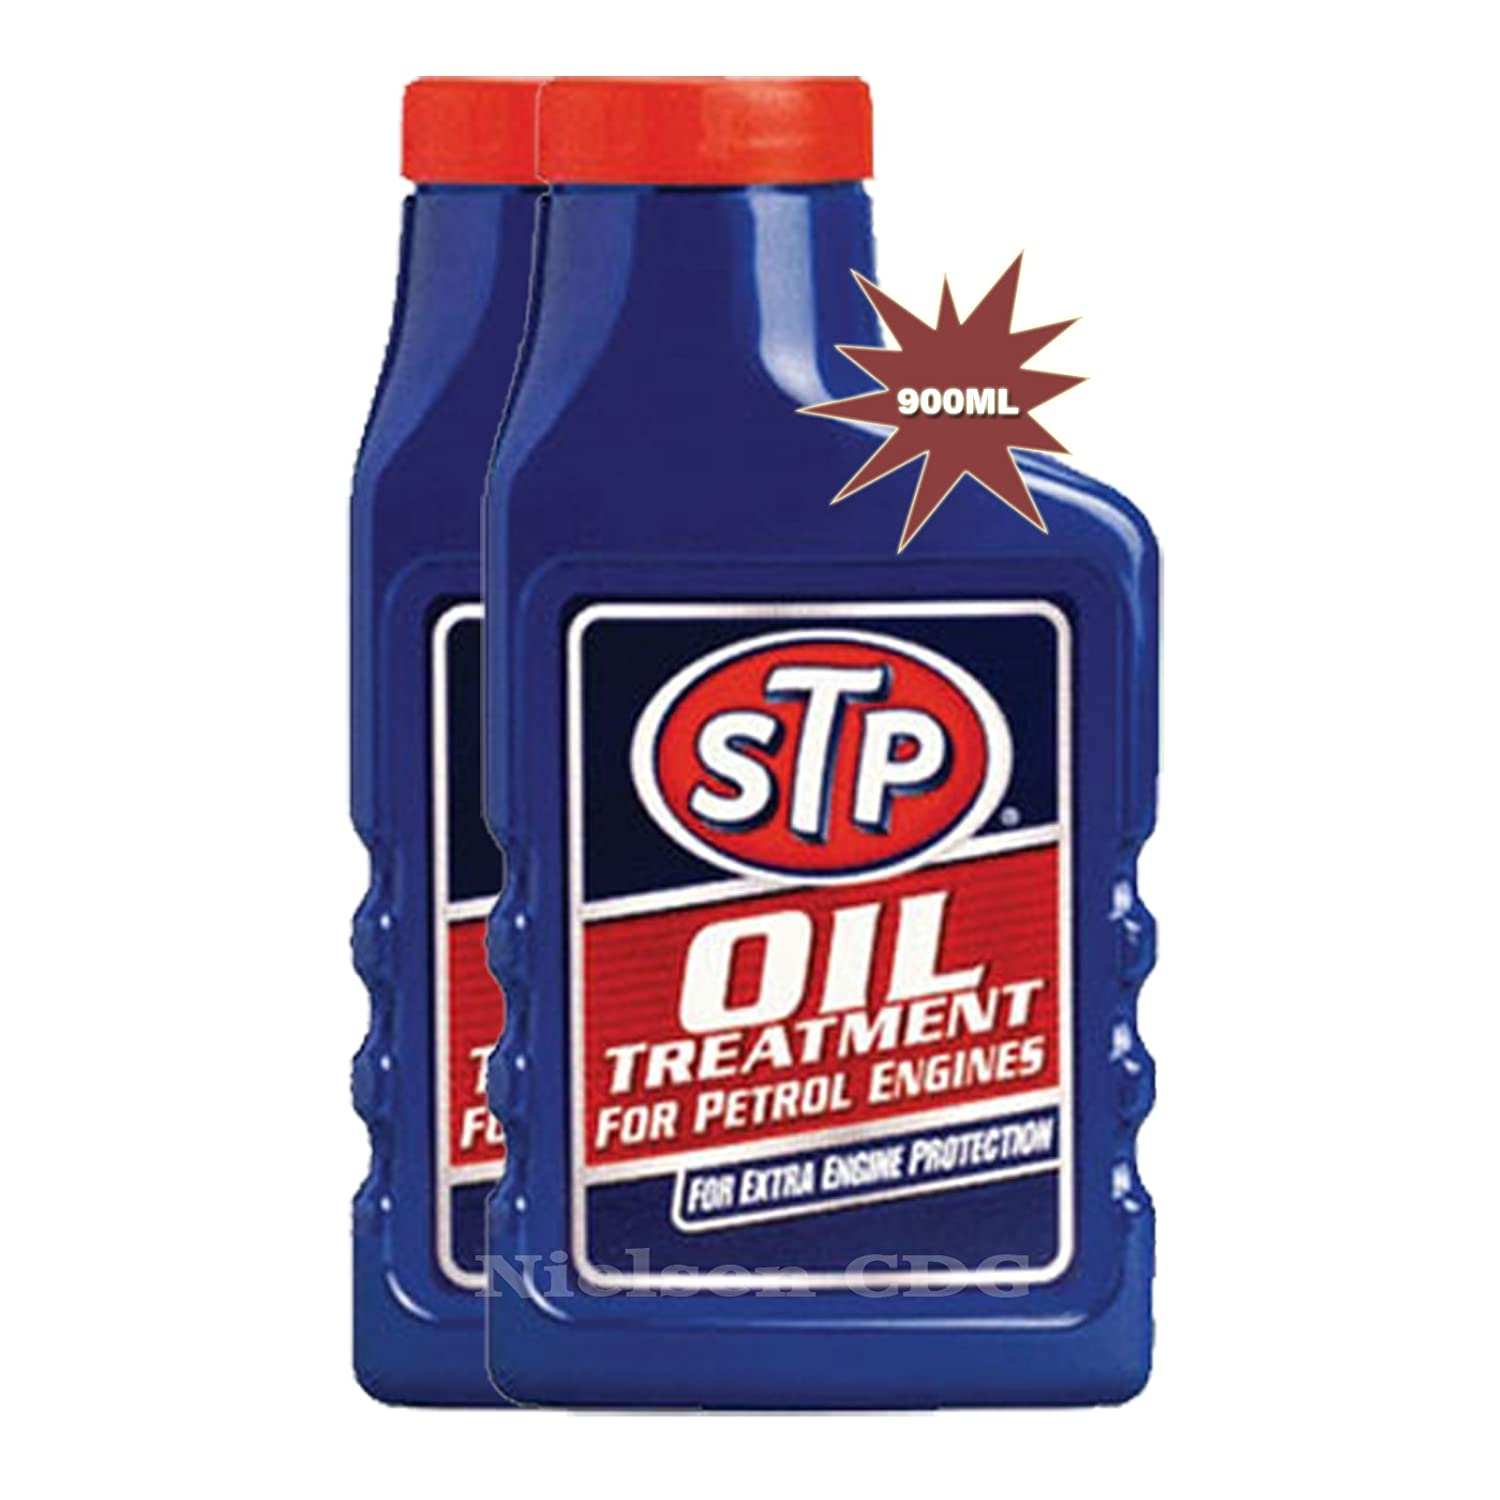 STP® Oil Treatment for Petrol Engines 450ml STP-60450EN-2 - 2x450ml = 900ml